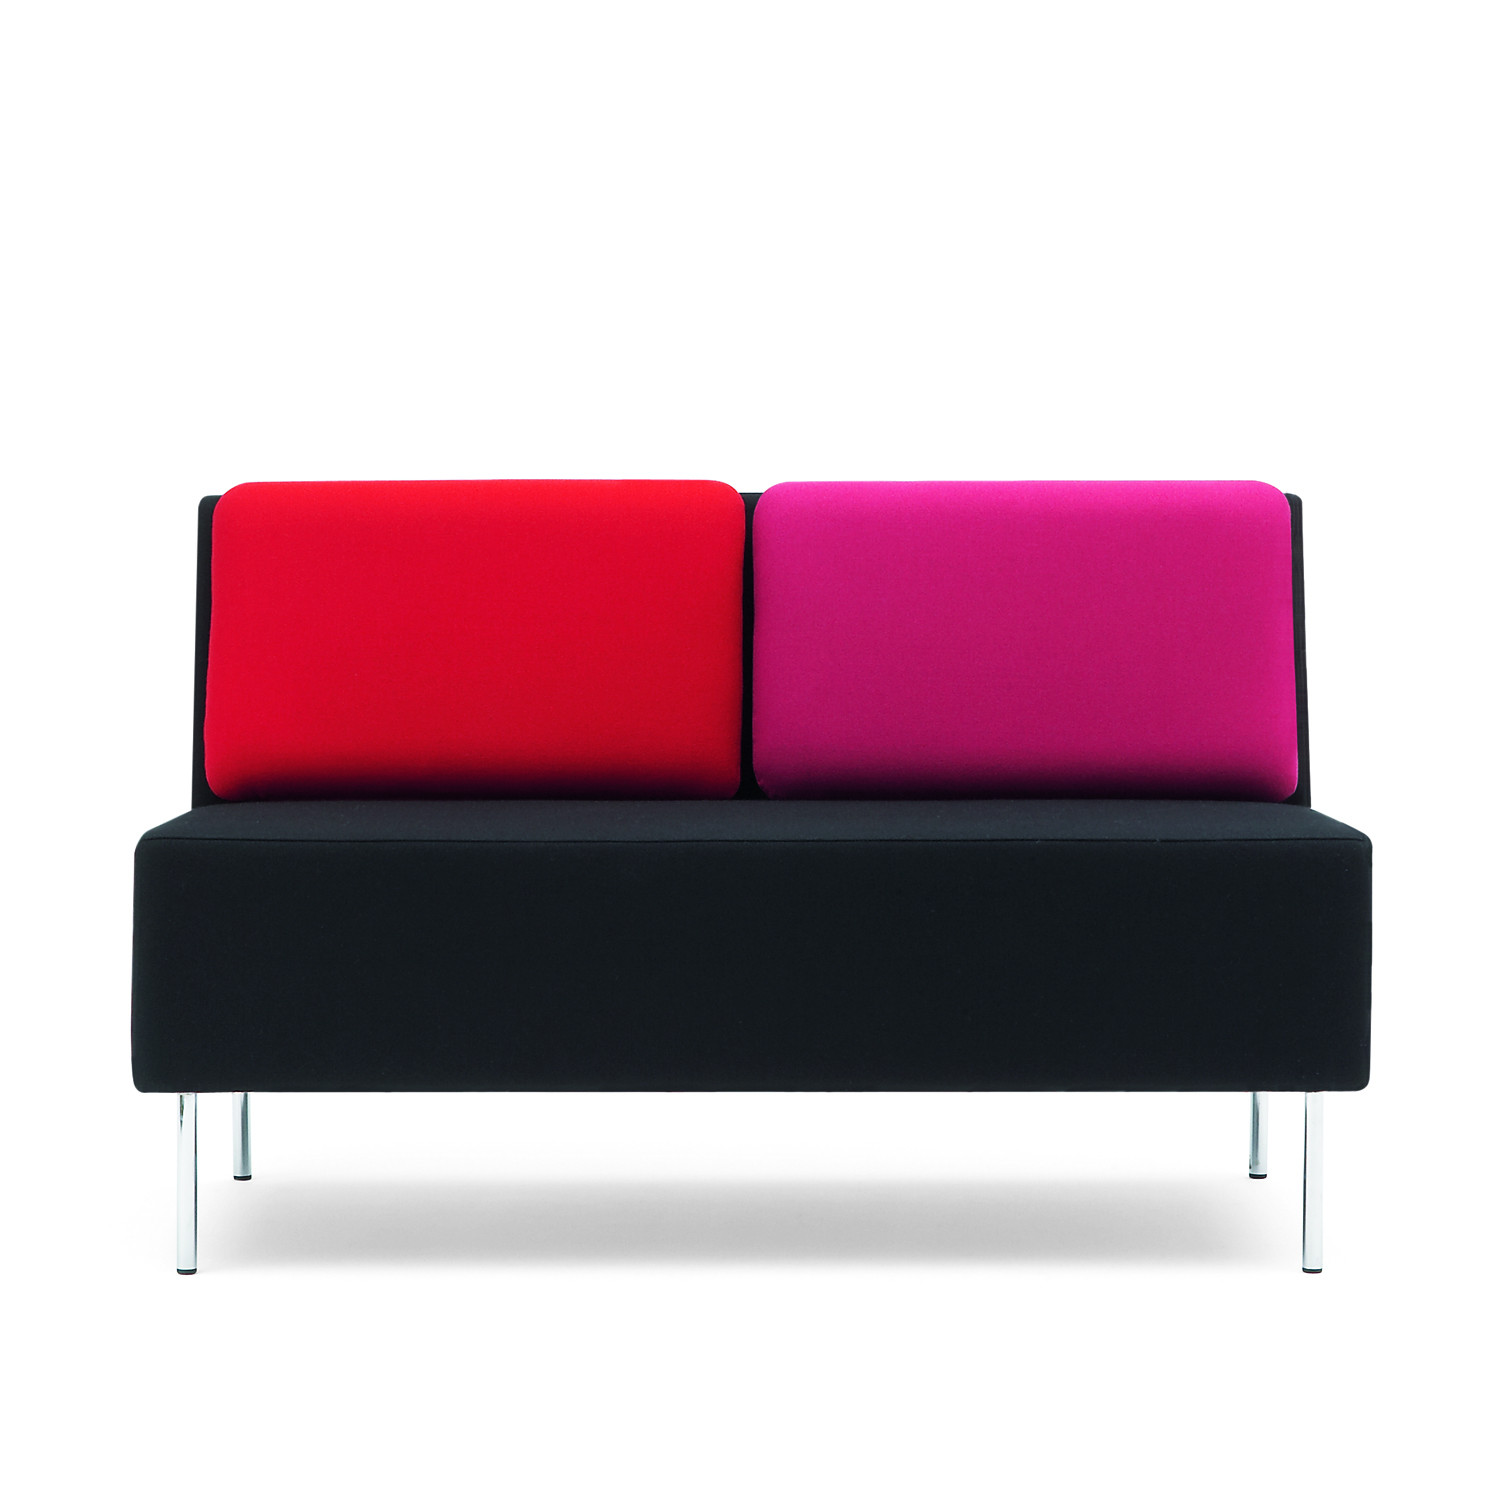 Playback Modular Sofa by Offecct